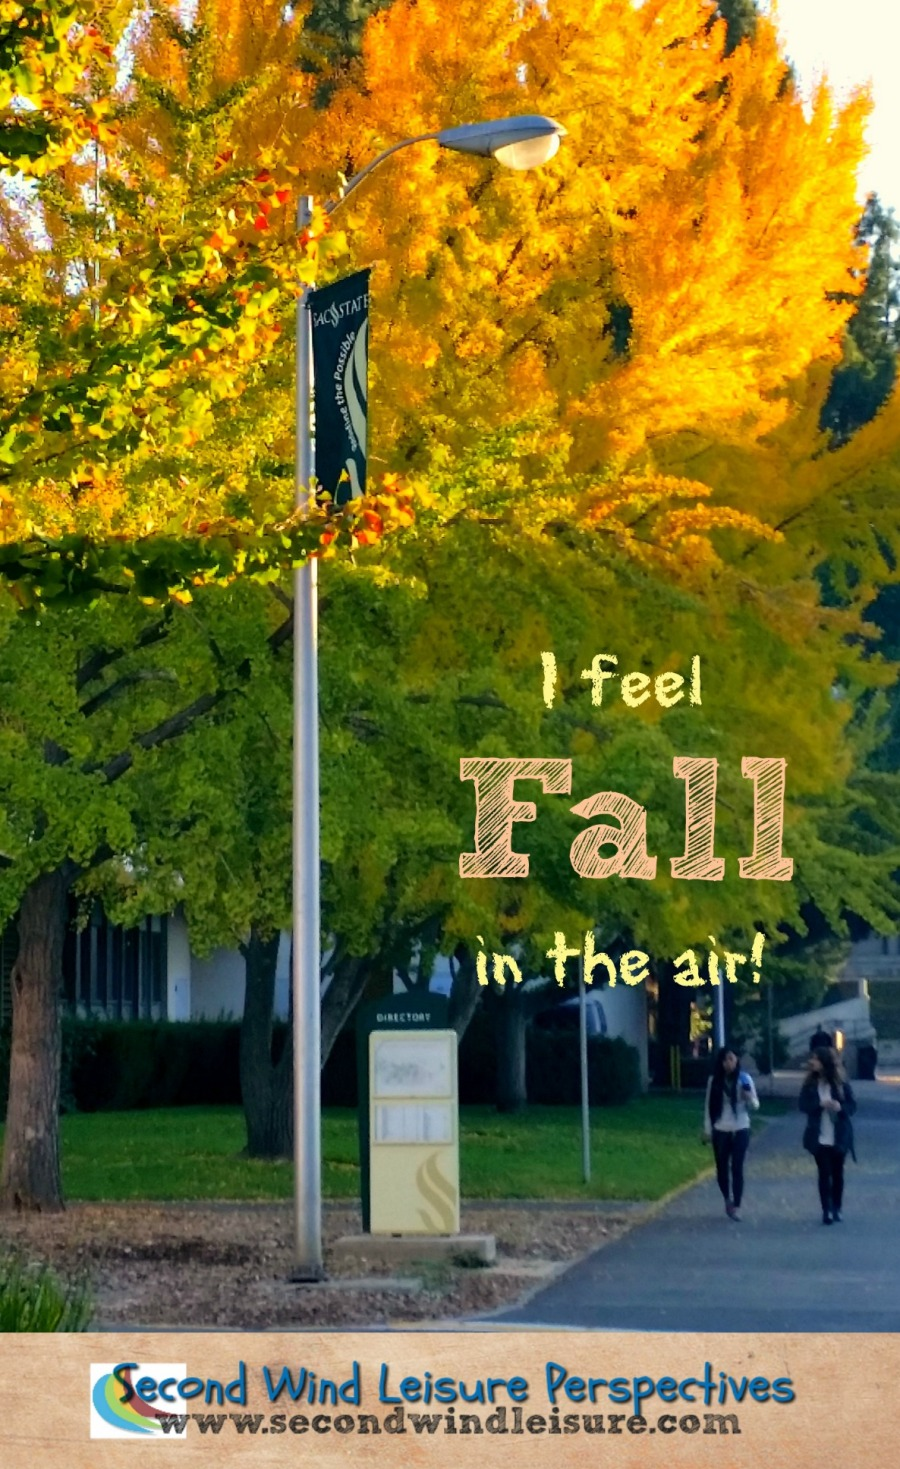 Autumn descends on students